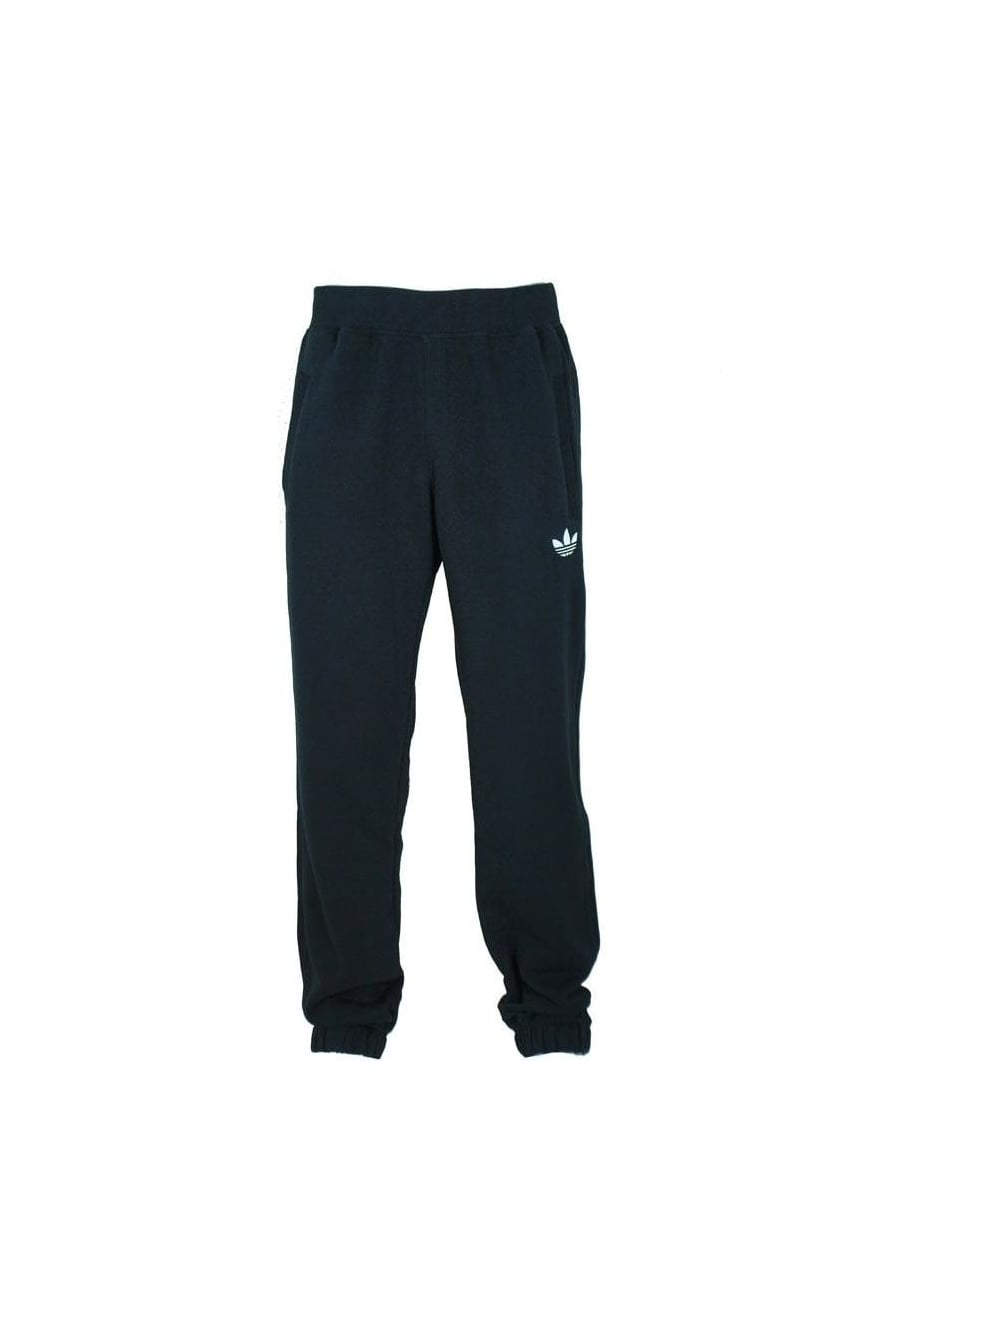 Mens Adidas Originals Sport Fleece Track Pants Black